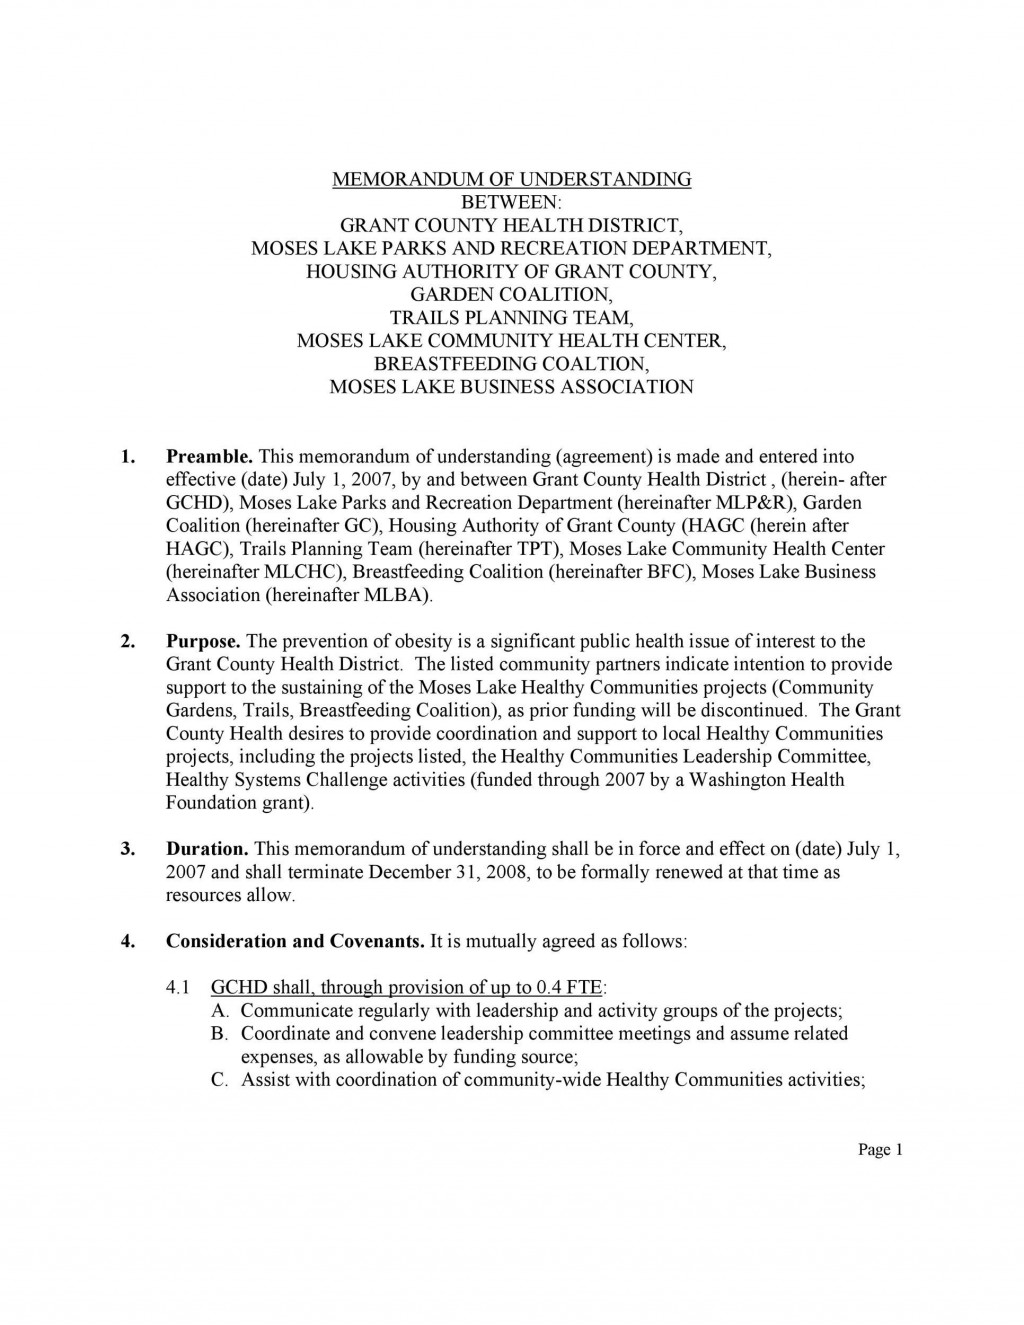 007 Top Memorandum Of Agreement Template Image  Templates Sample Tagalog South Africa Philippine DocLarge